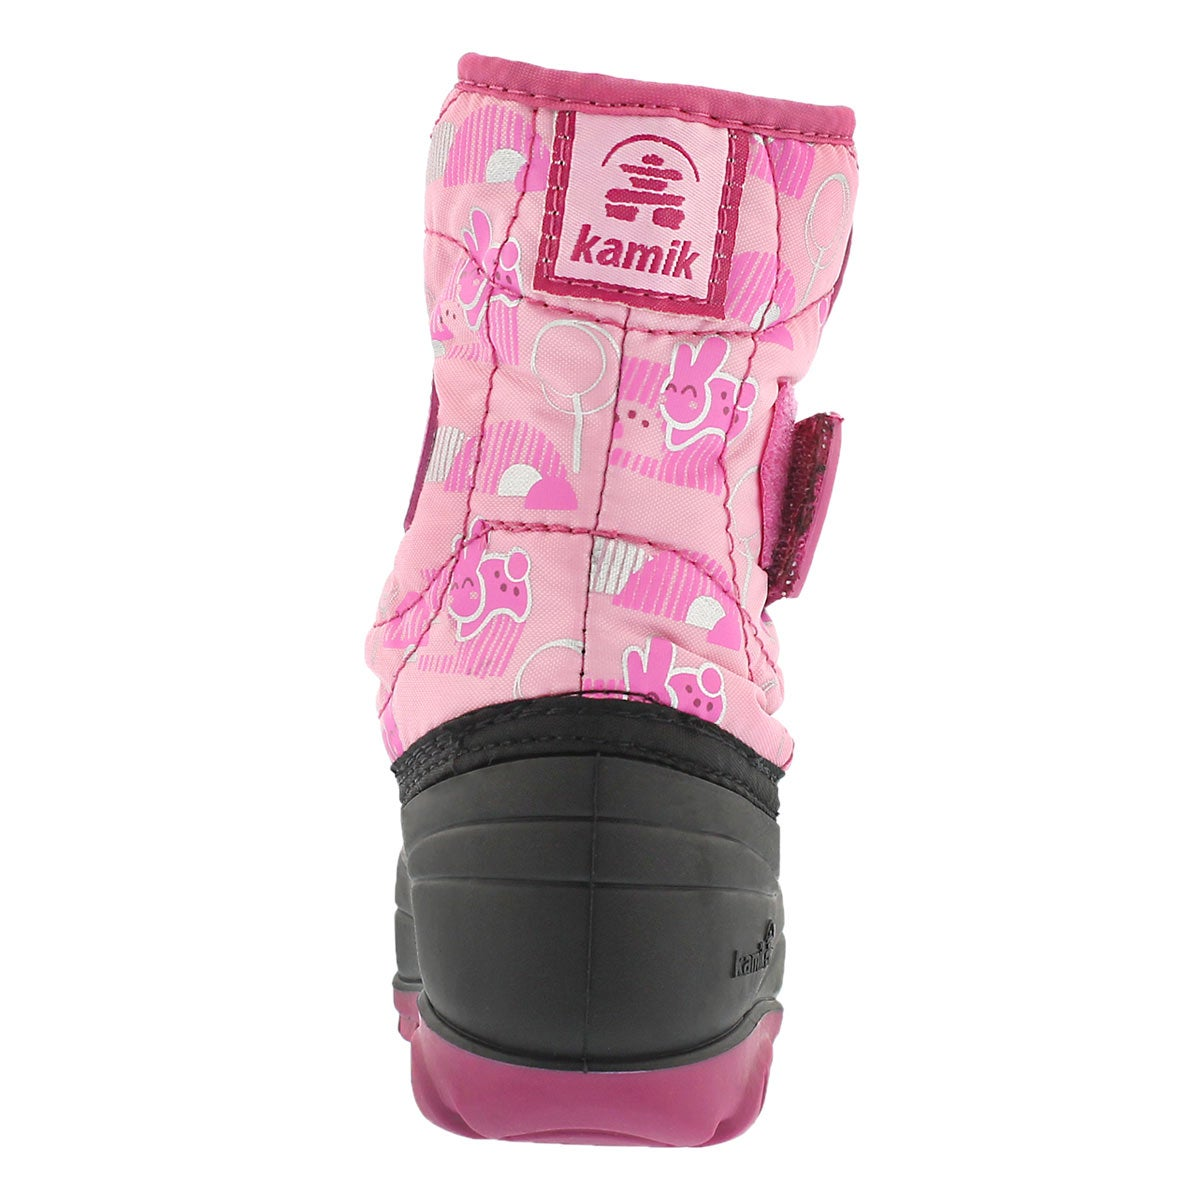 Infs Snowbug4 pink printed winter boot